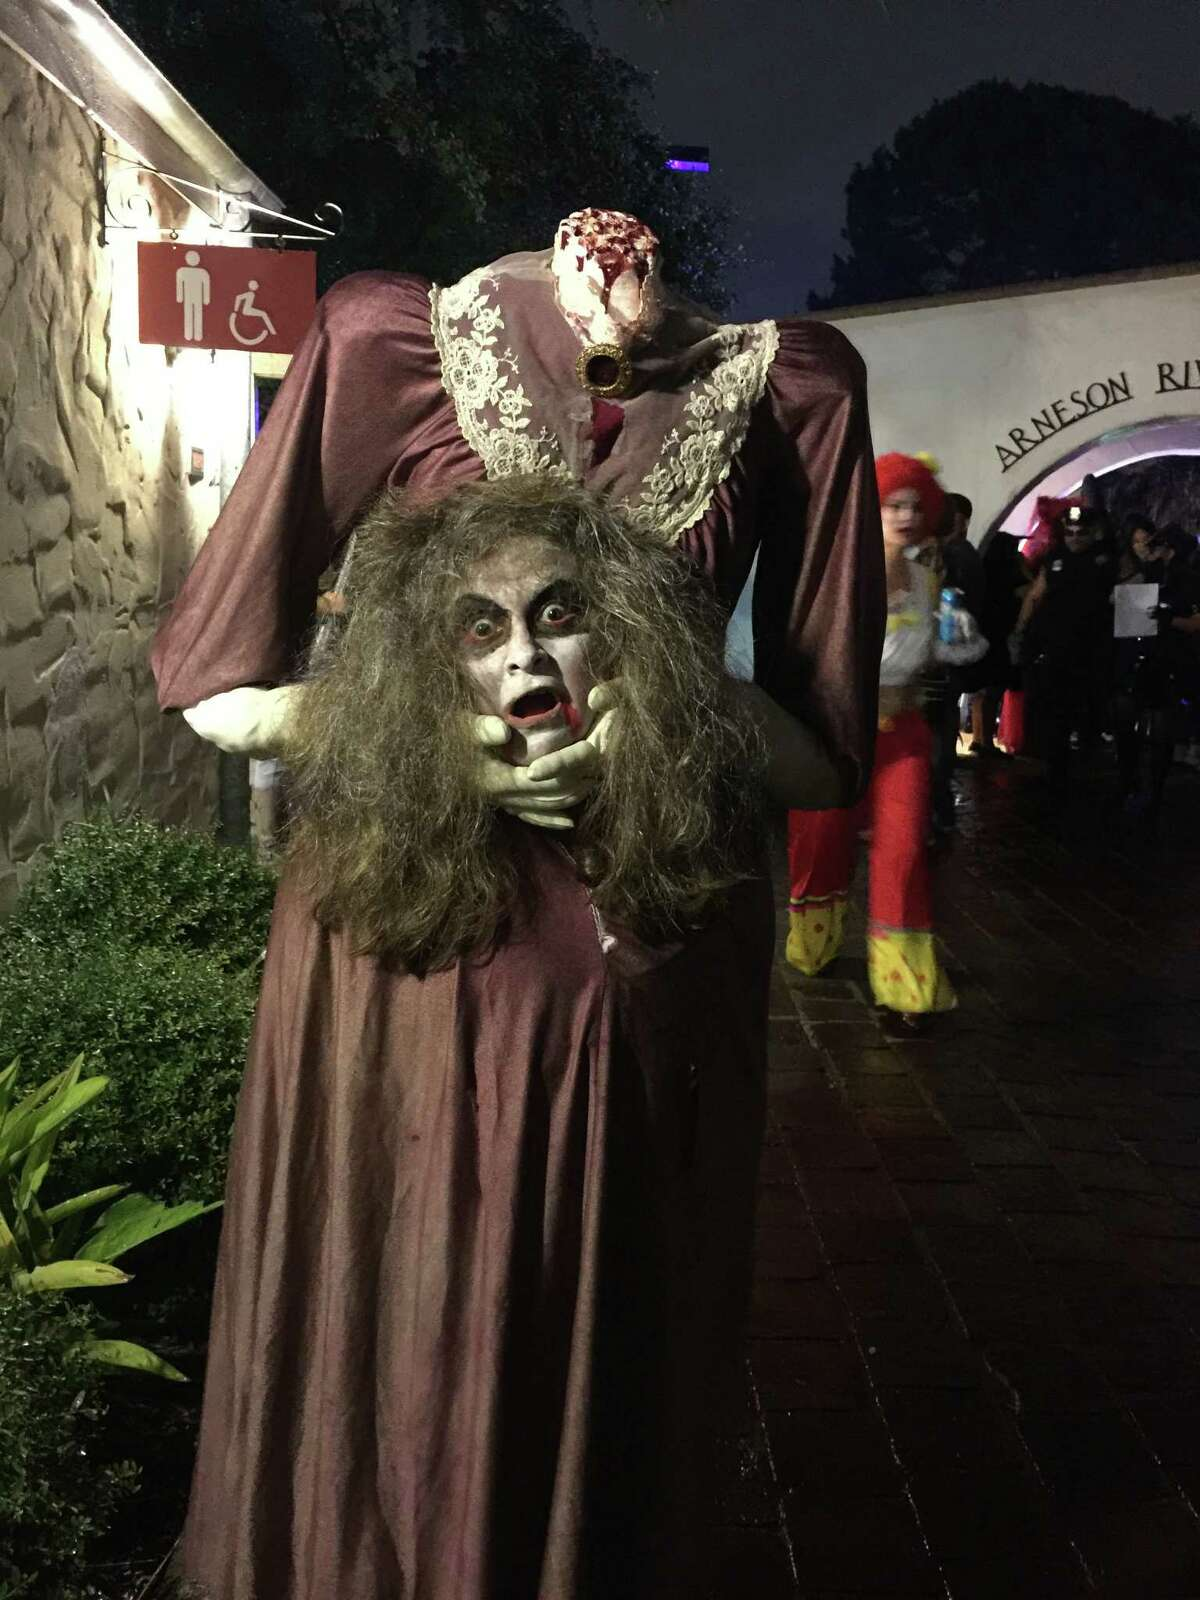 The River Walk welcomes trick-or-treaters of all ages for a family-friendly Haunted River. Trick-or-treating begins at 6:30 p.m. followed by a costume contest, with a first-place prize of $500, and a decorated river parade. Free event; food and drinks available for purchase. 6-10 p.m. Friday. Arneson River Theatre, 418 Villita St. and Shops at Rivercenter 849 E. Commerce St., thesanantonioriverwalk.com. -- Polly Anna Rocha